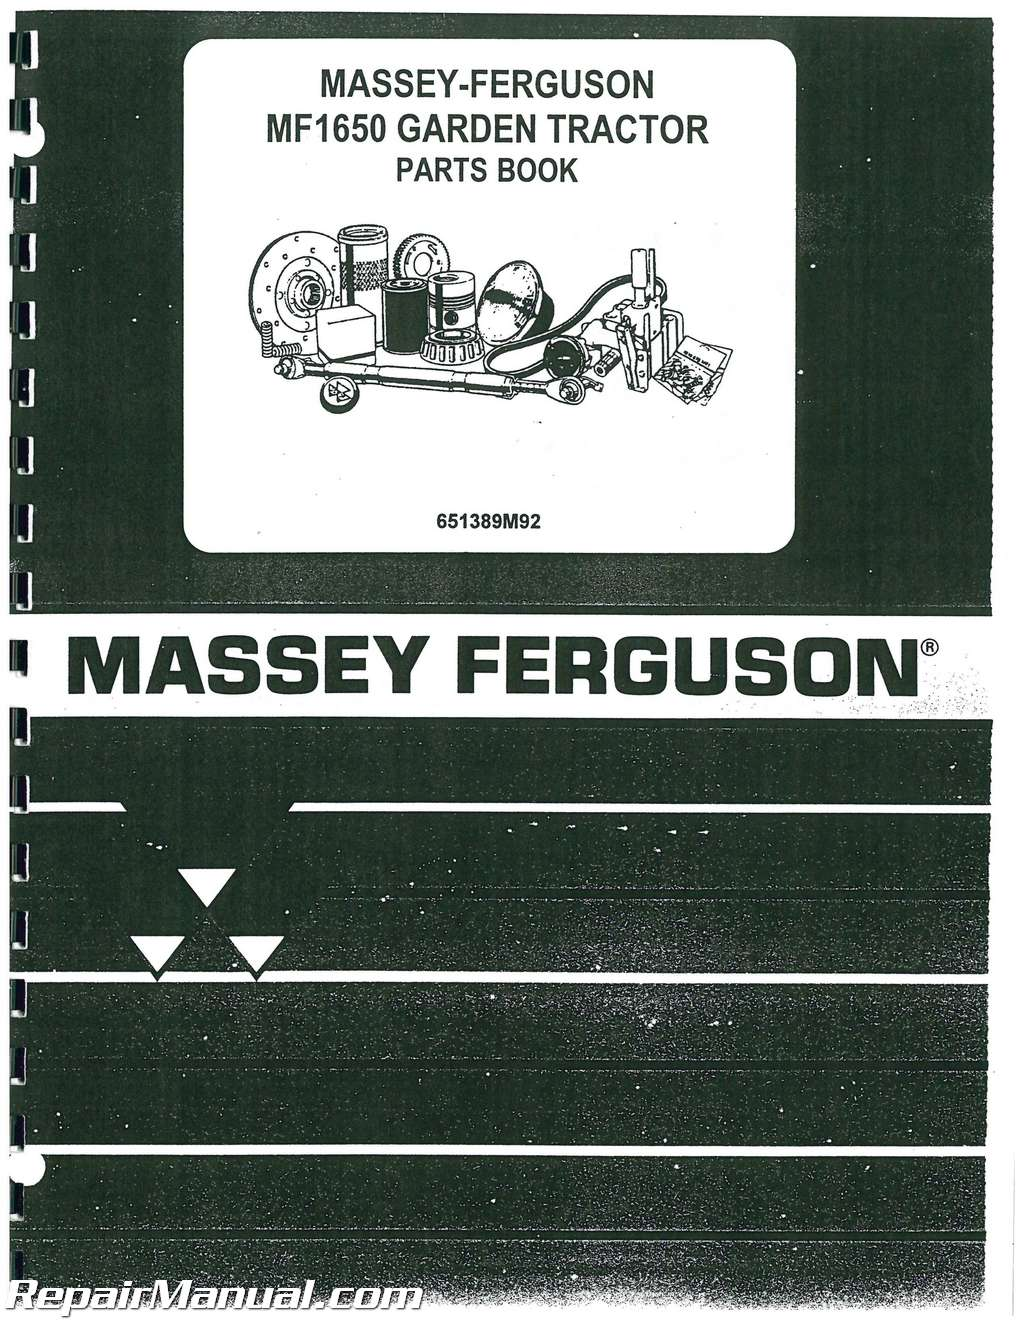 Massey-Ferguson-MF1650-Parts-Manual_001.jpg ...